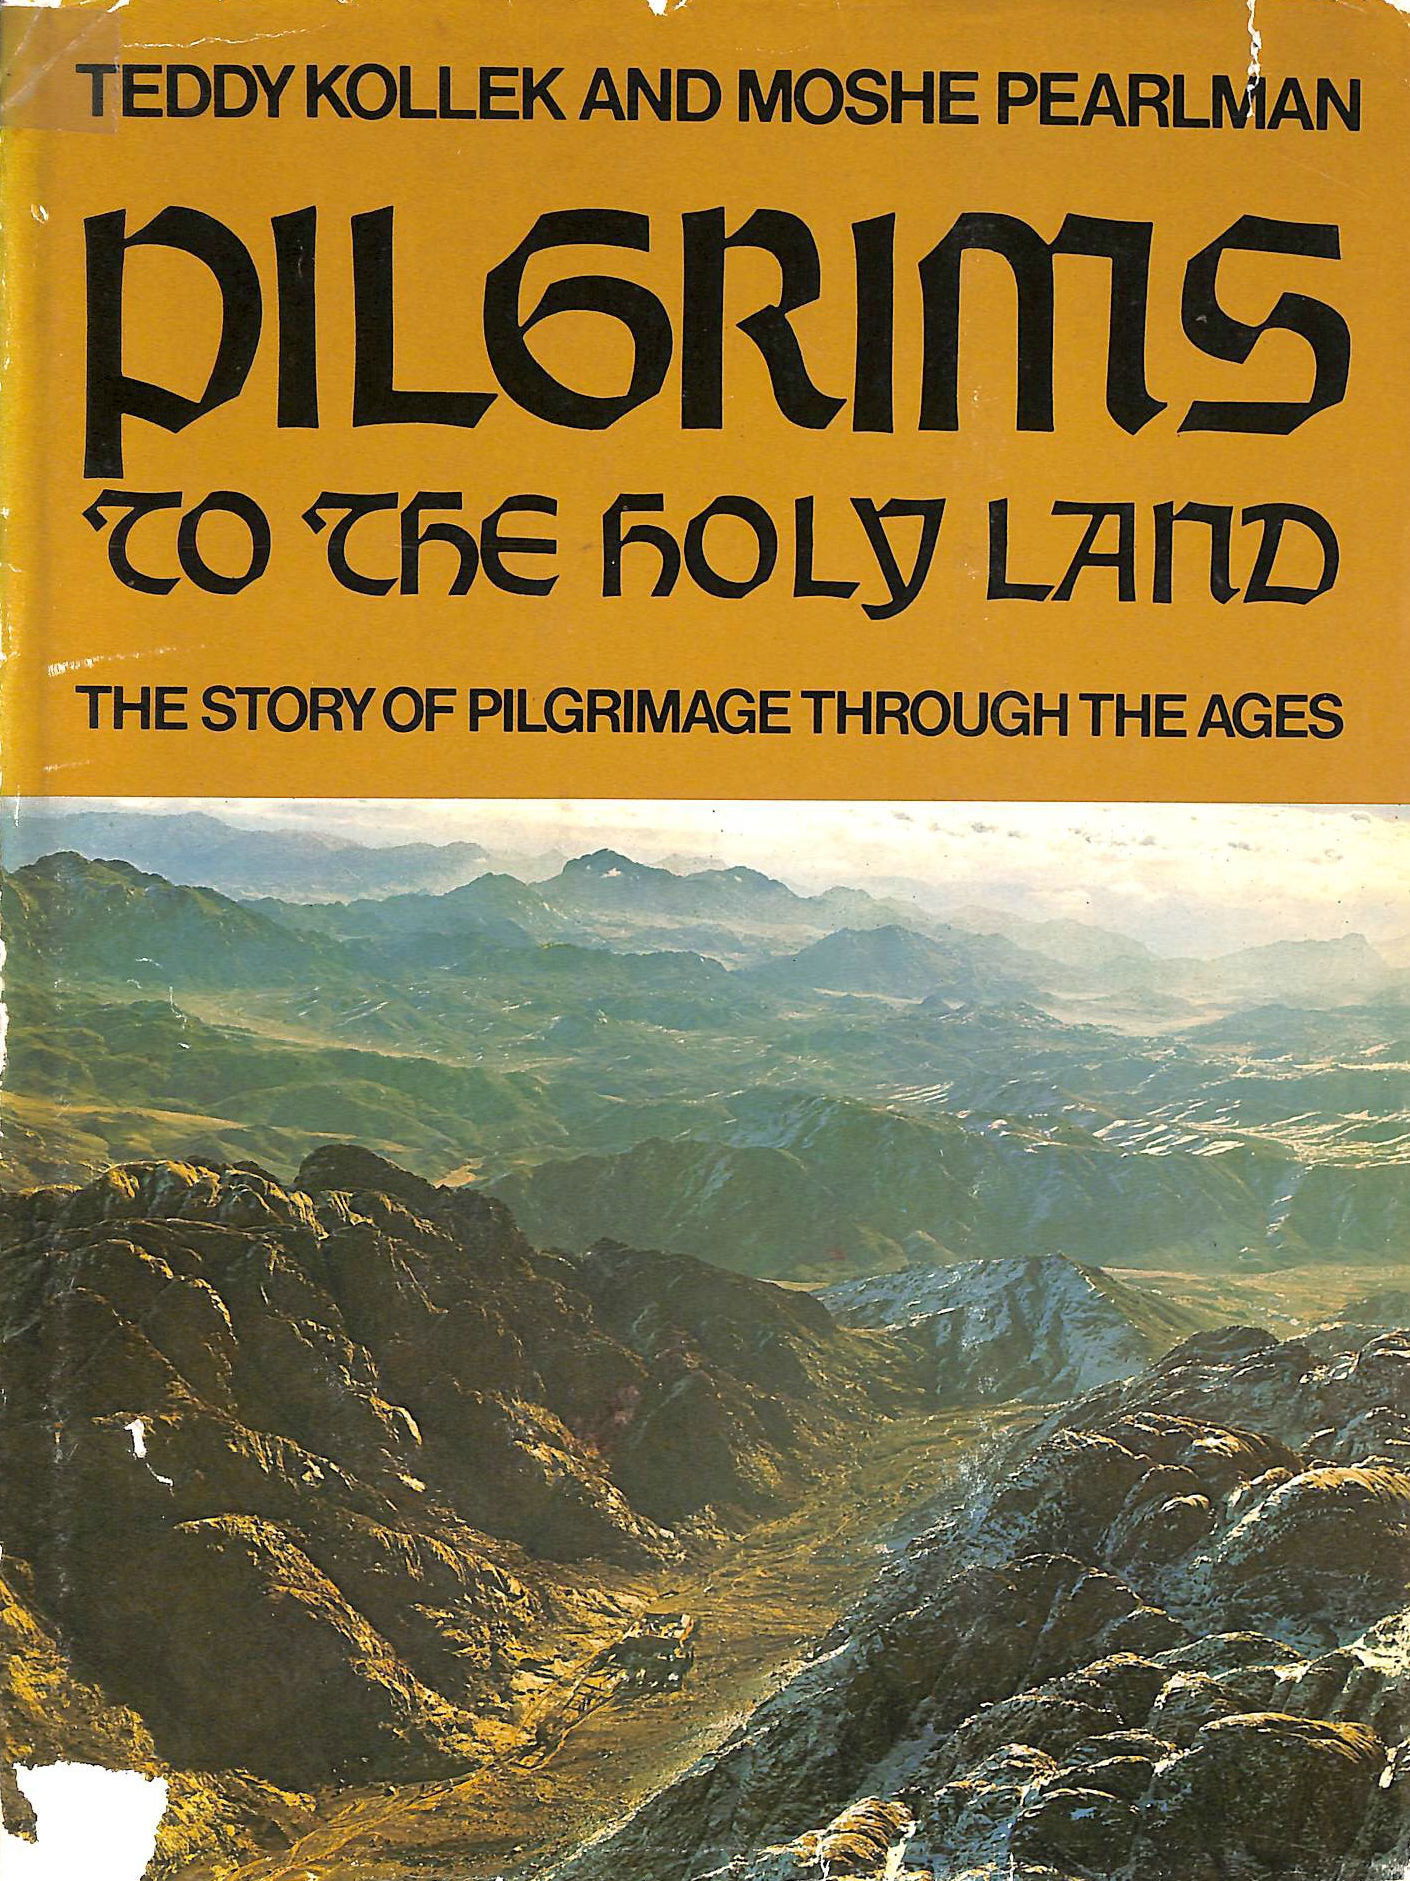 Image for Pilgrims to the Holy Land: Pilgrimage Through the Ages